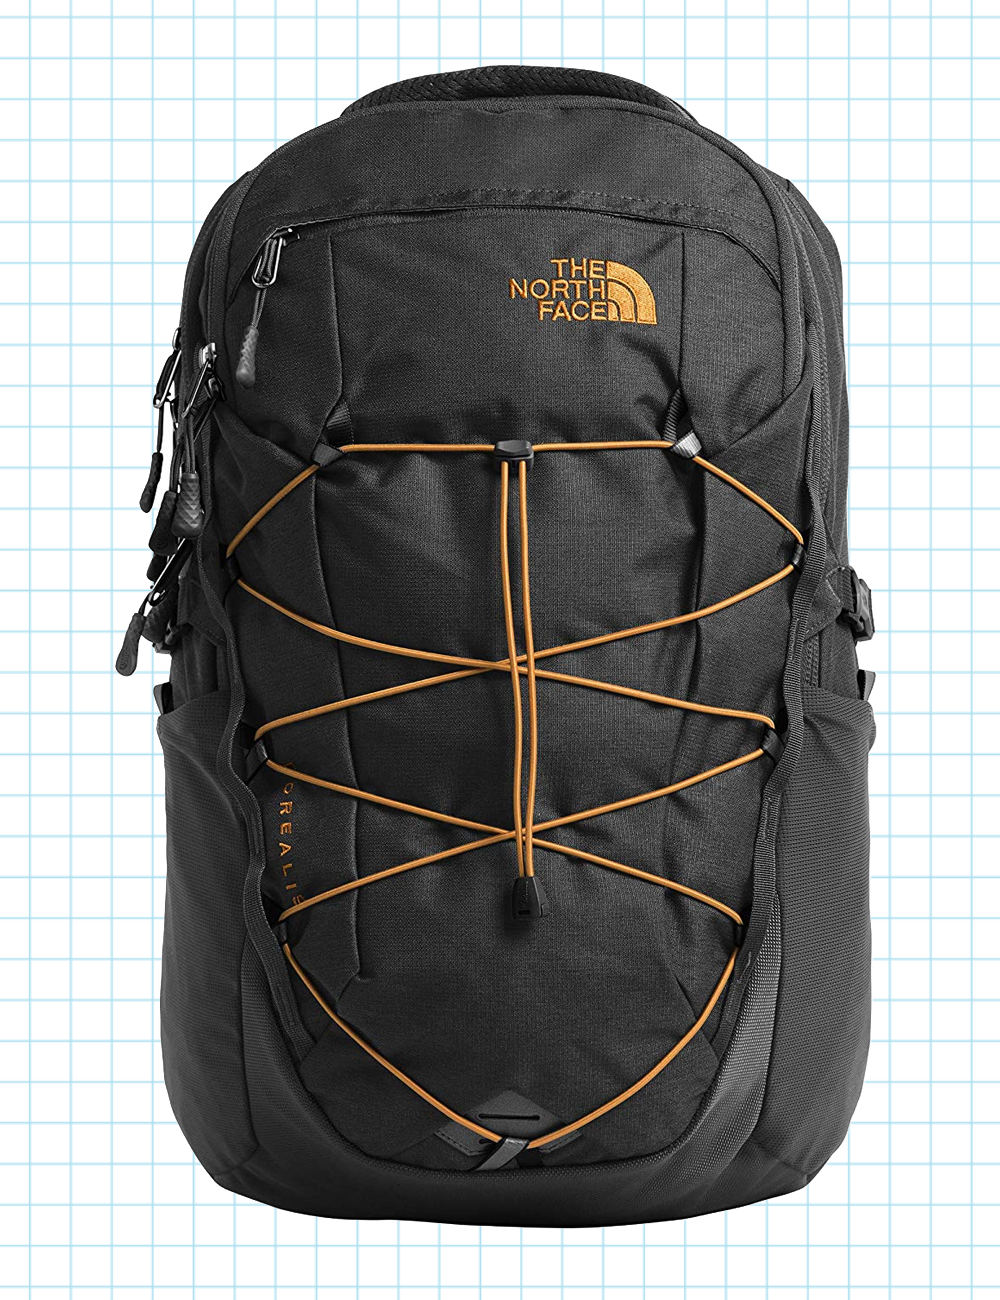 c53e6cf4886 9 Best Backpacks for College Students 2019 - Laptop Bags for Students